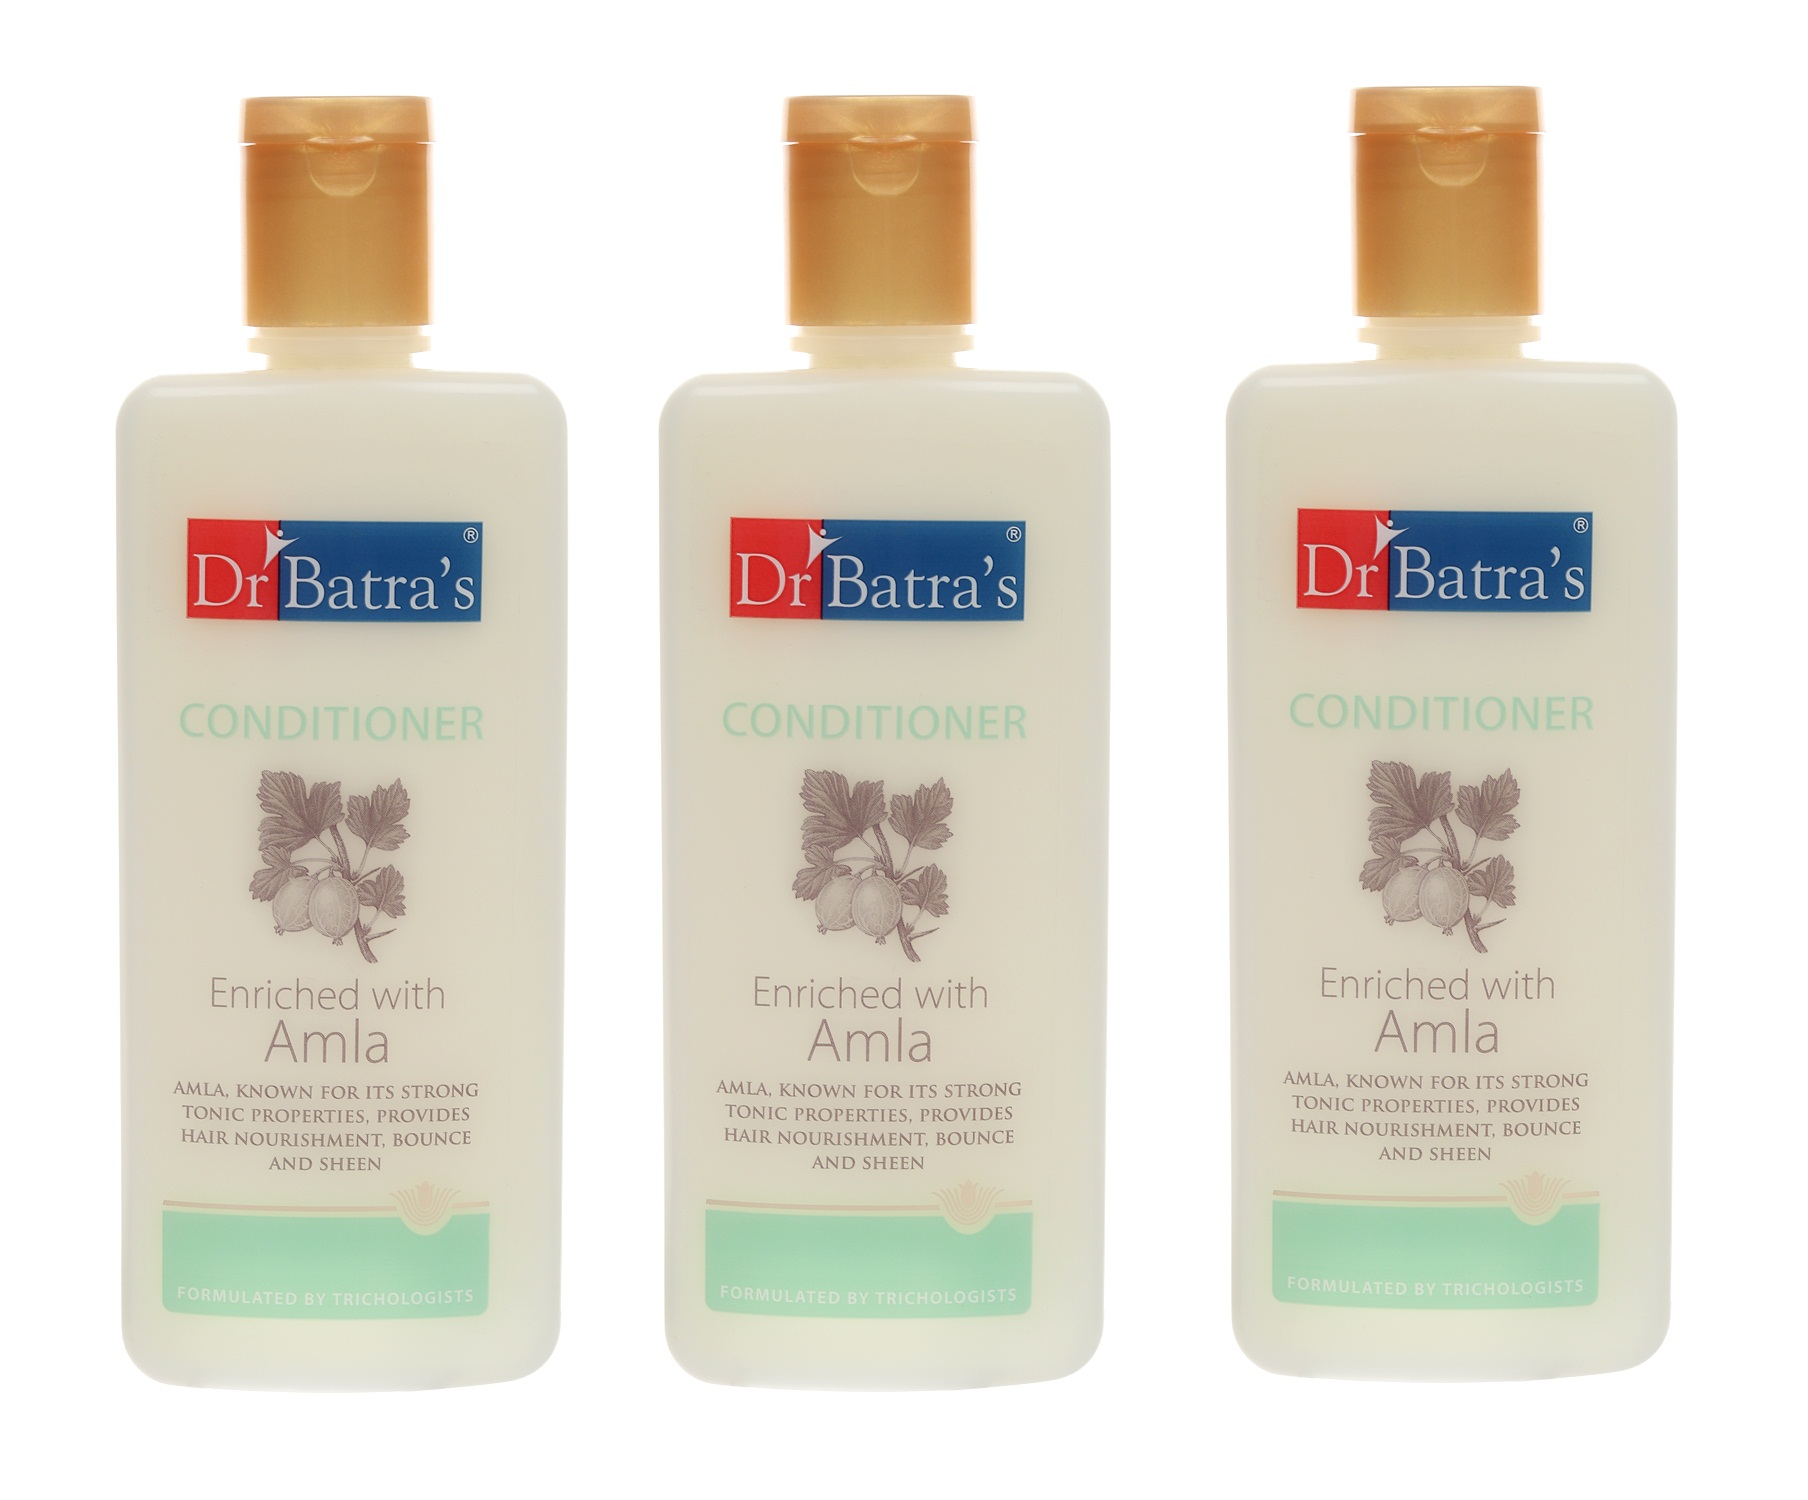 Dr Batra's | Dr Batra's Conditioner Enriched With Amla - 200 ml (Pack of 3)